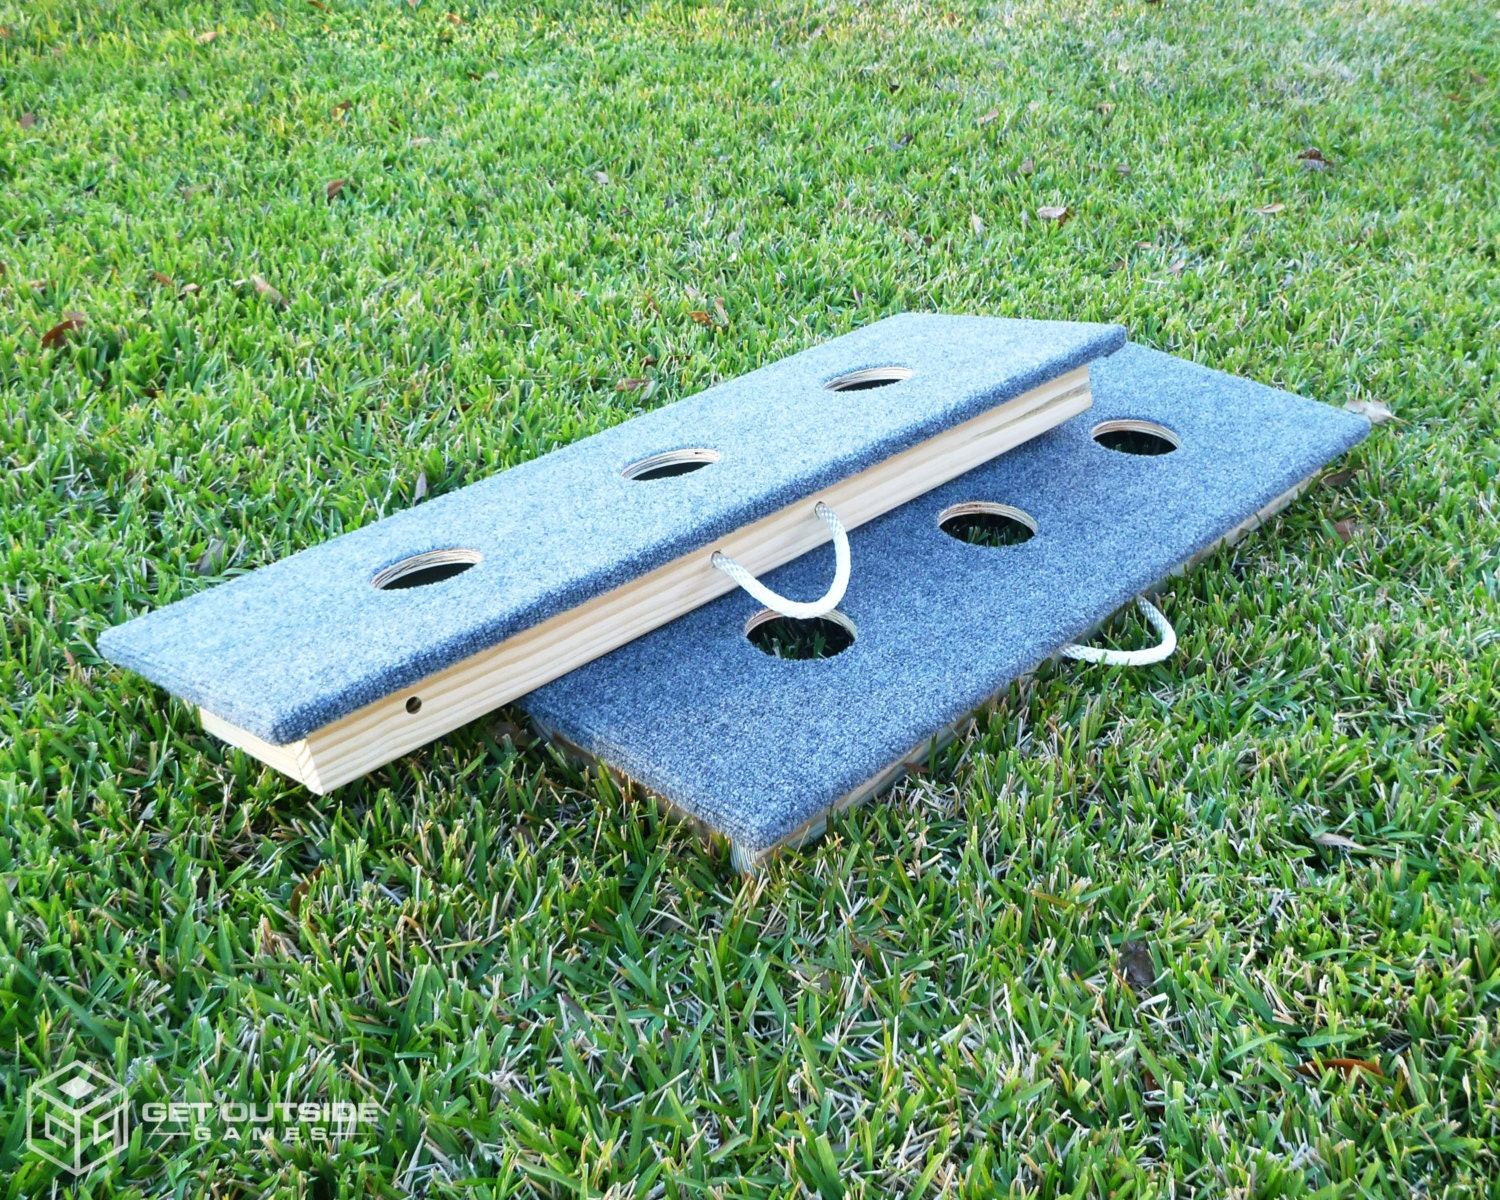 3 hole washer toss game